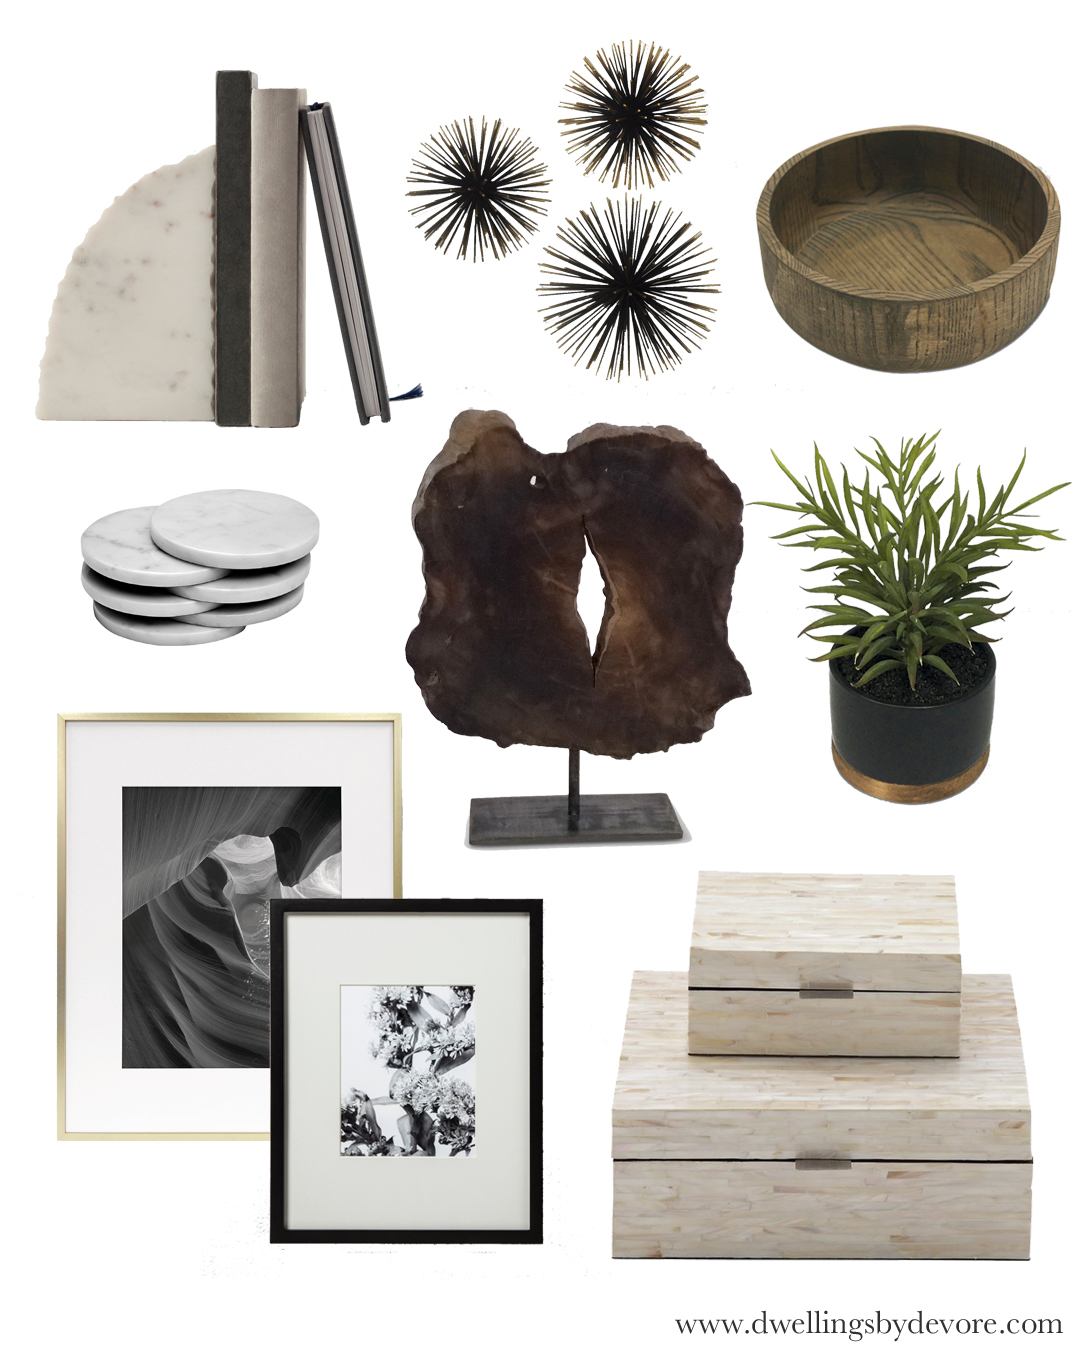 Dwellings By Devore Moodboard Monday Home Decor Accessories